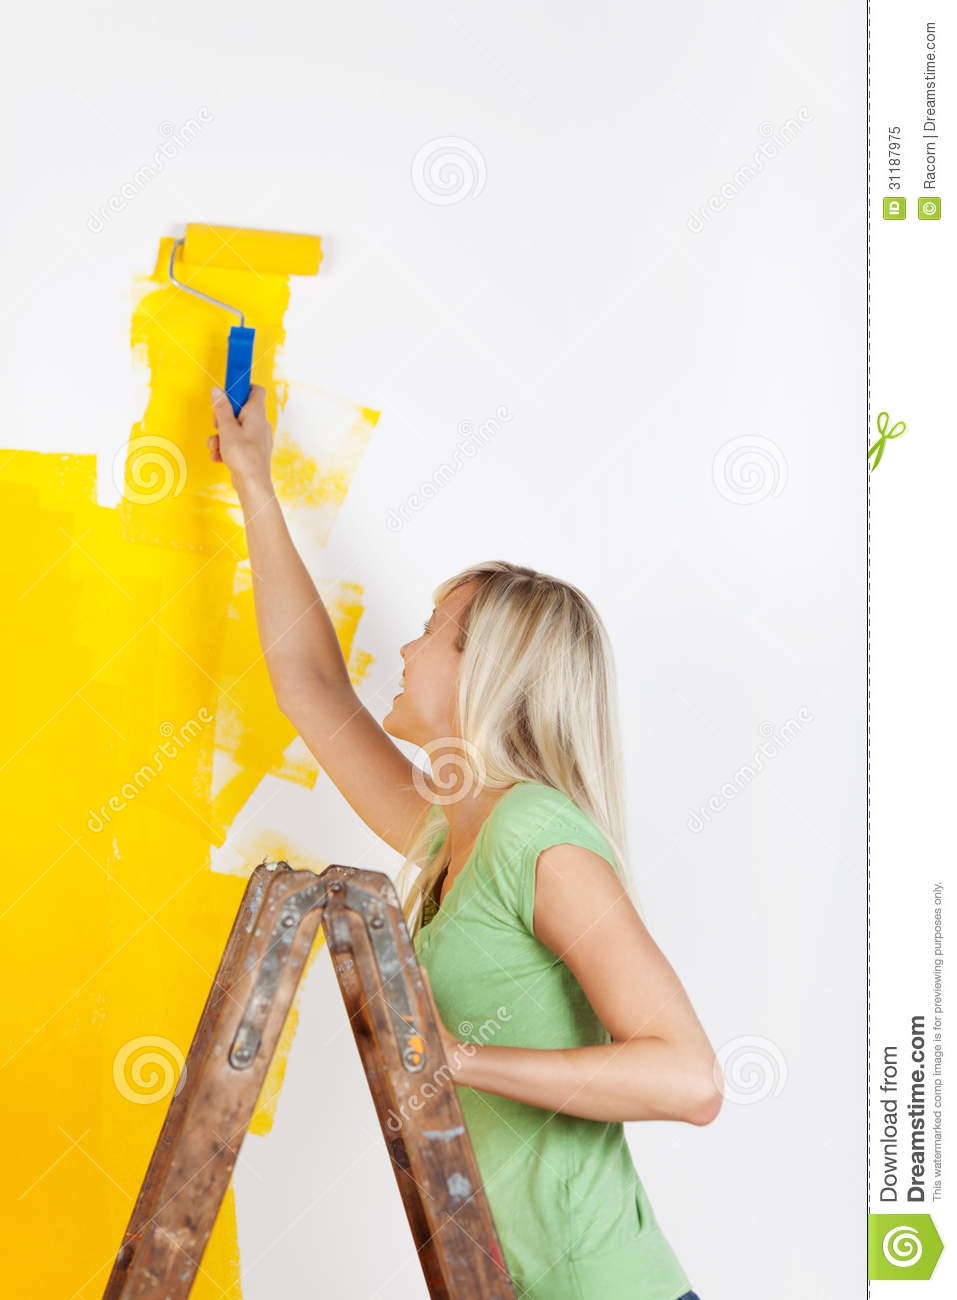 Woman Standing On A Ladder Painting Stock Image  Image 31187975